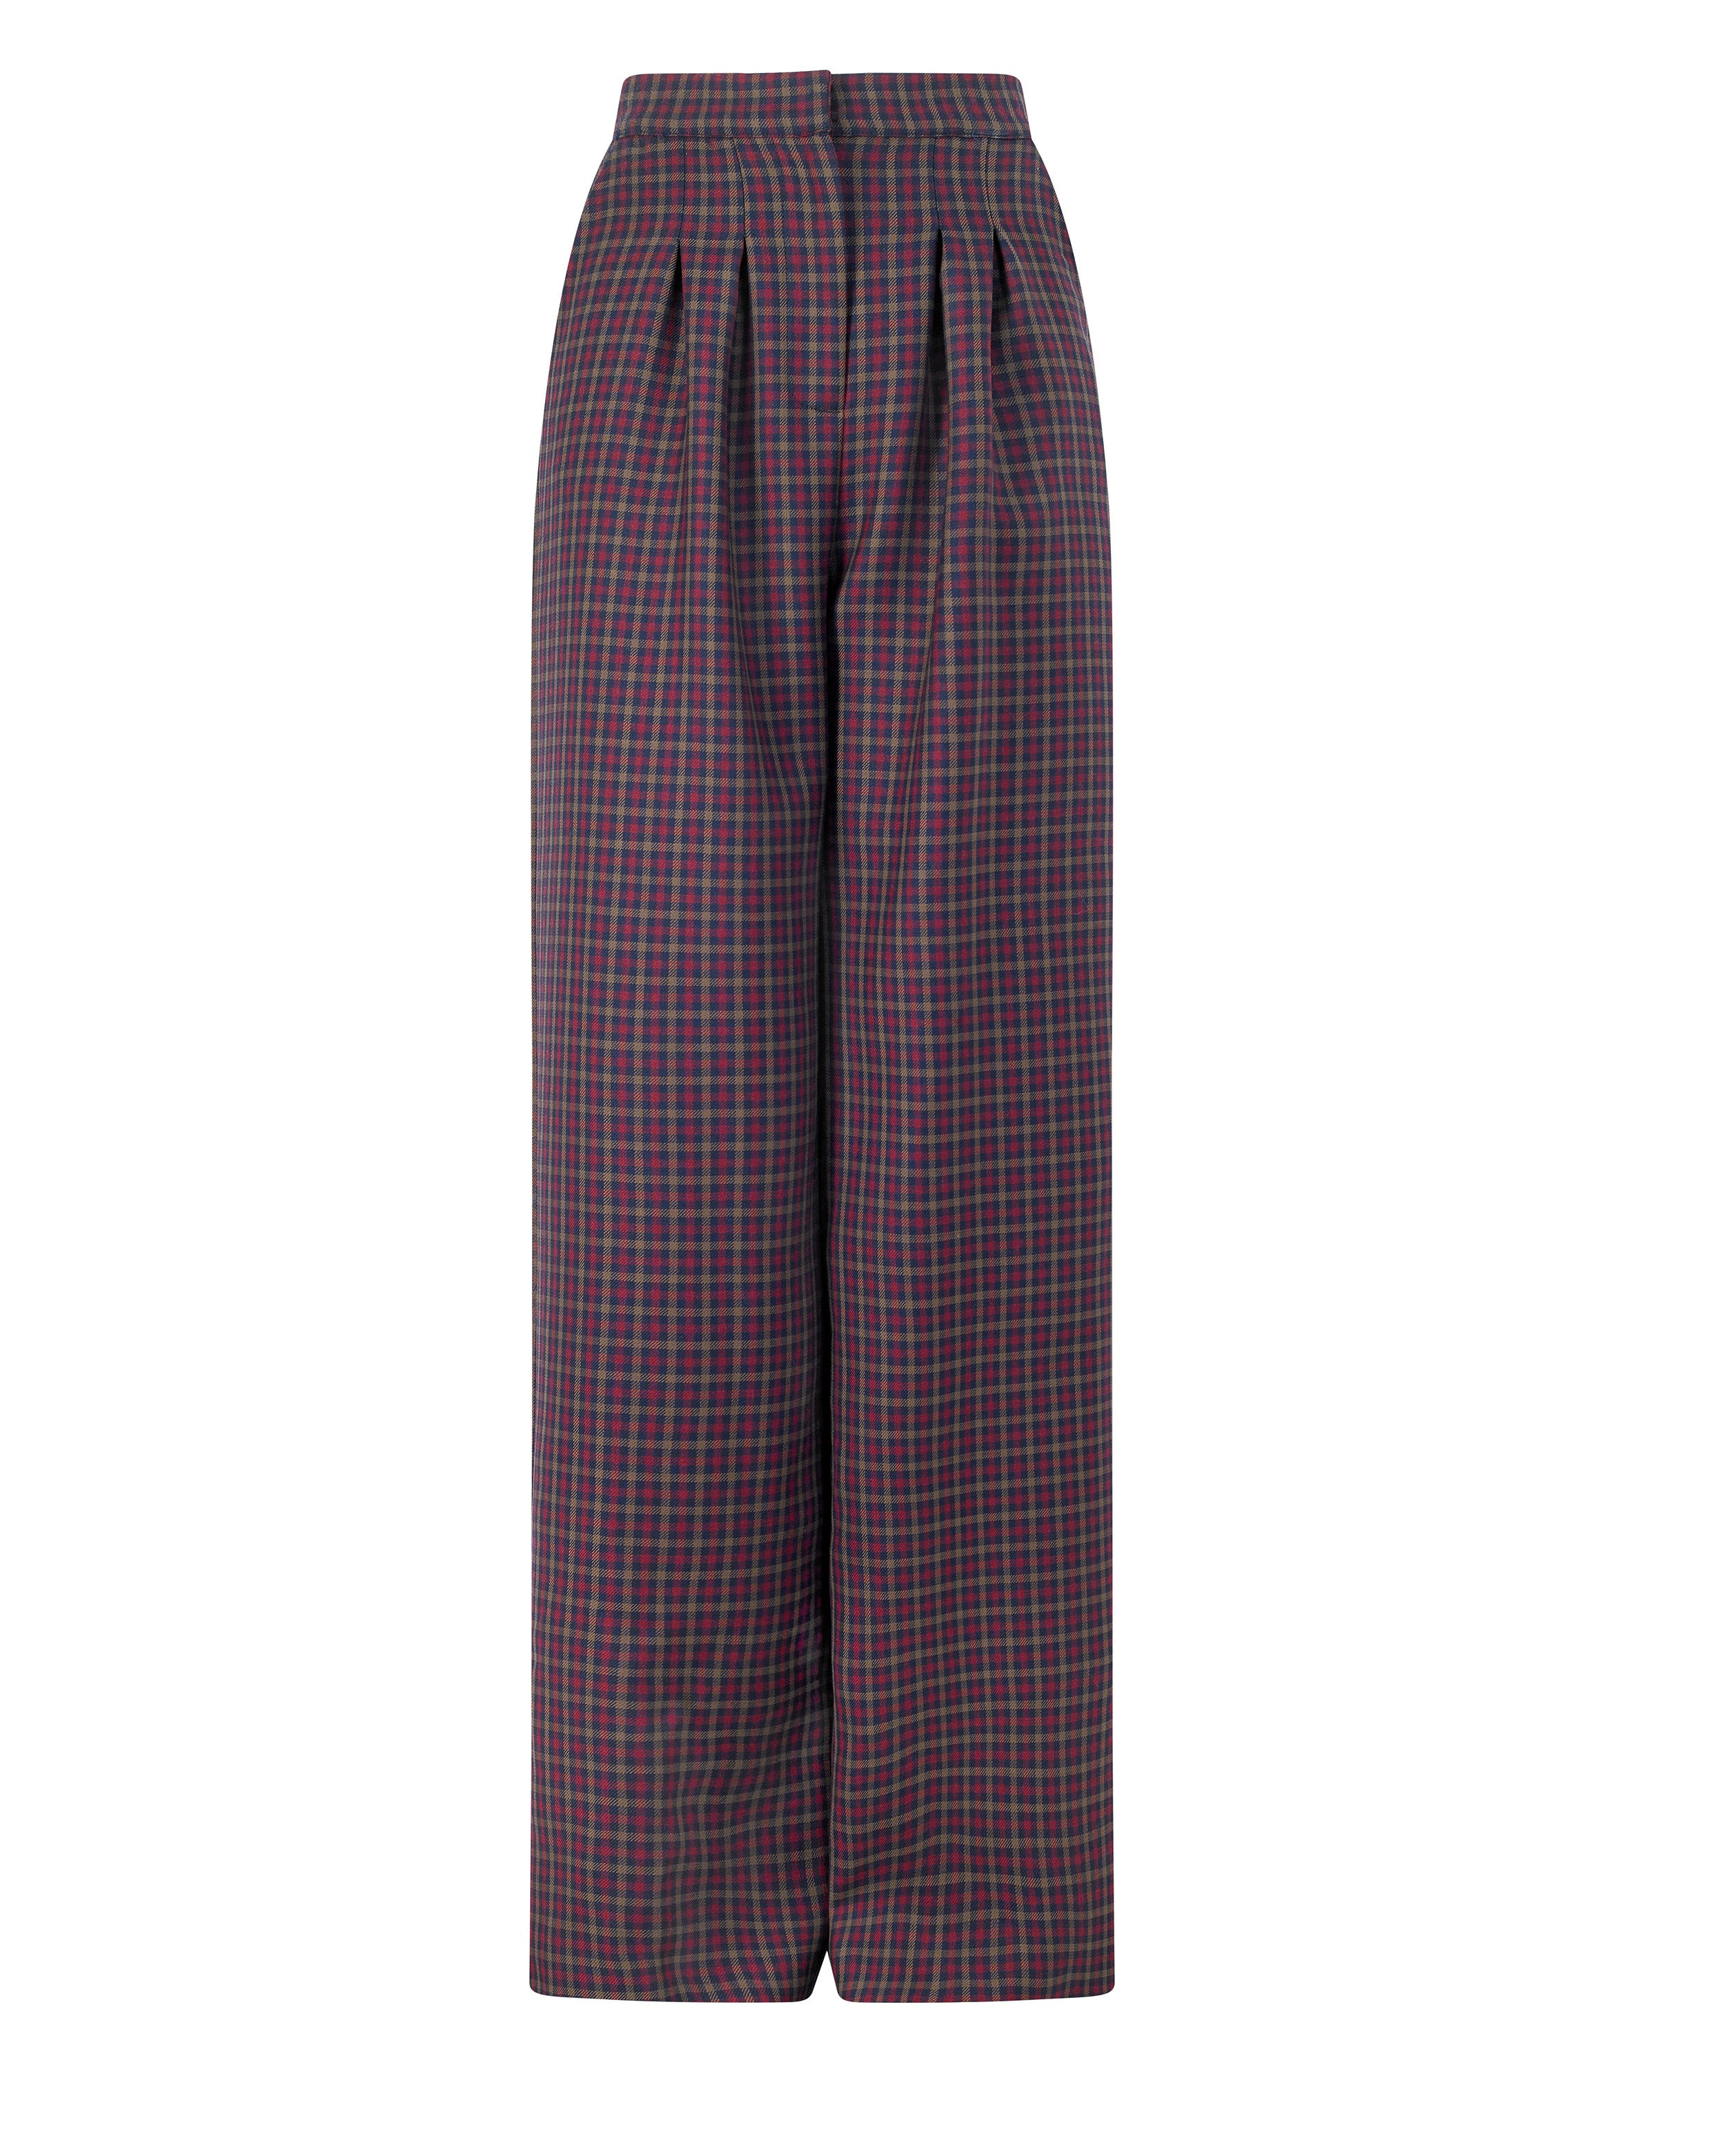 Gladys Trousers in Autunno